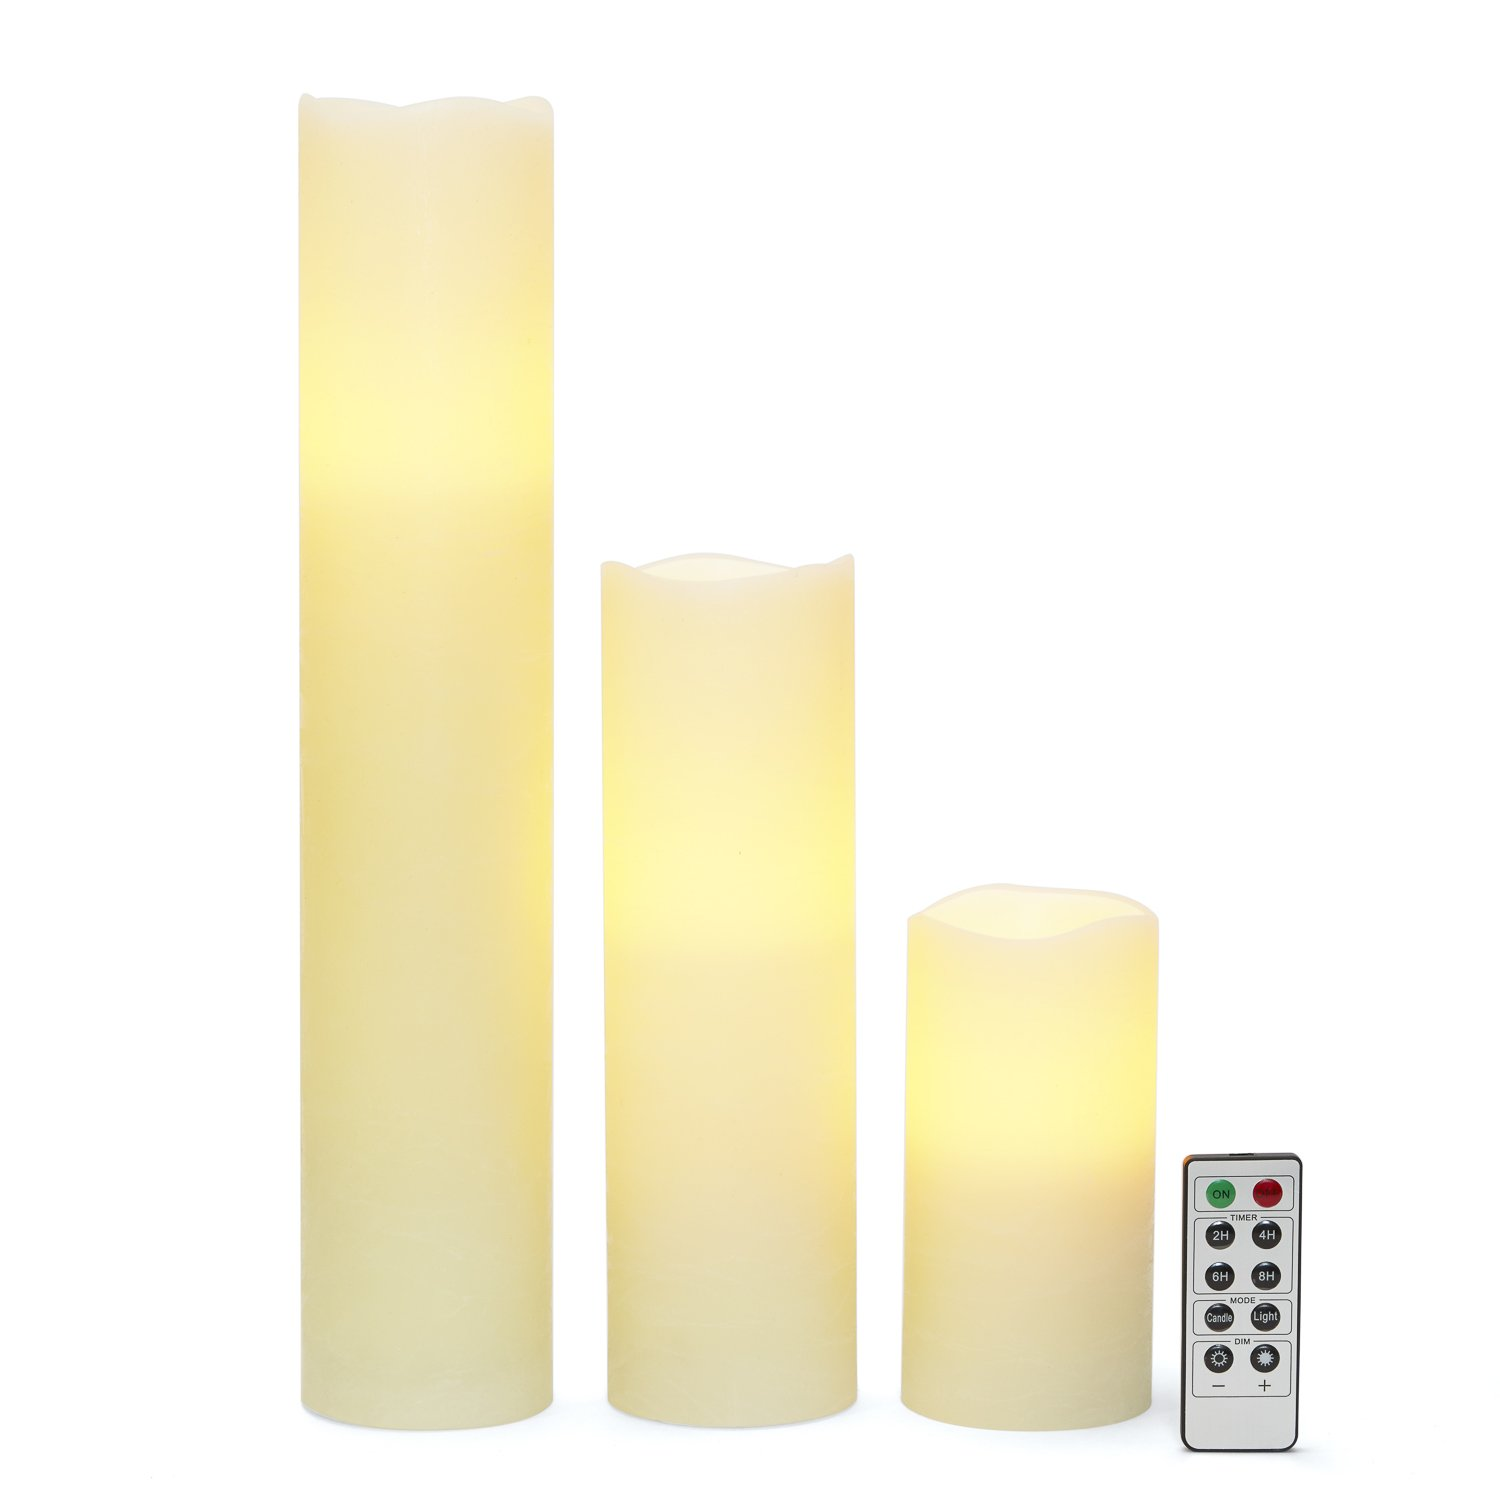 Flameless Ivory Pillar Candles with Remote, Tall Candle Set with Distressed Wax Finish, Warm White Glowing LEDs, Batteries Included - Set of 3